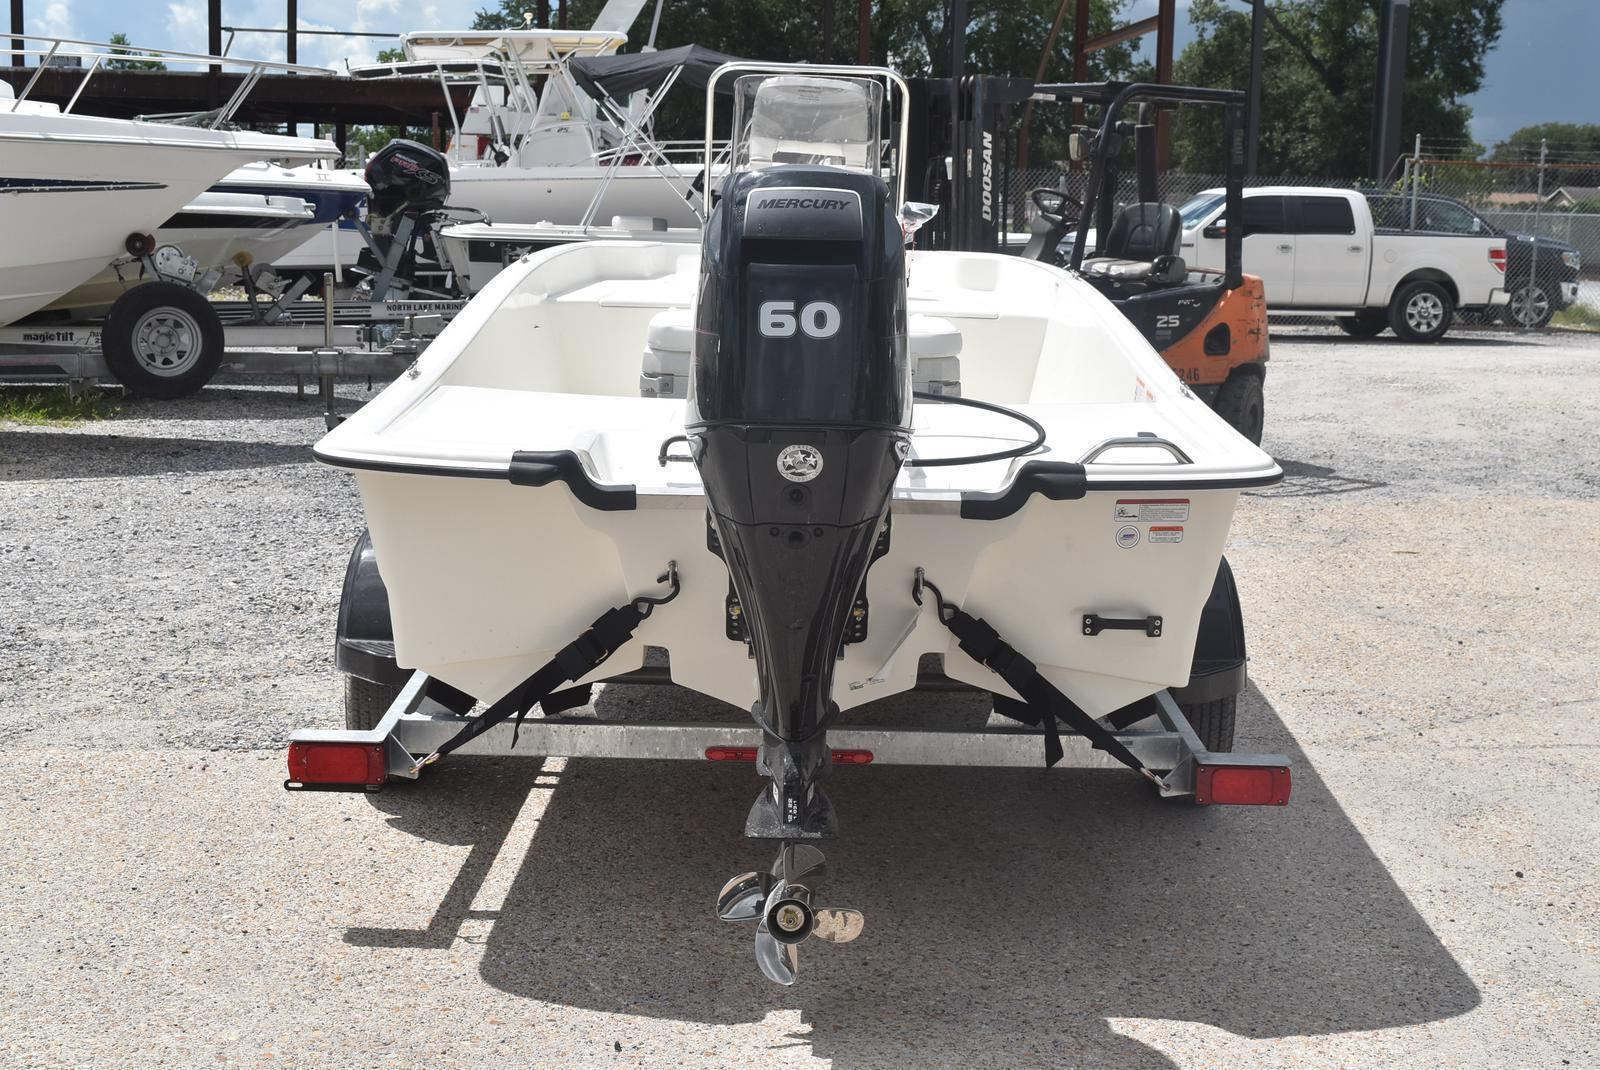 2020 Mako boat for sale, model of the boat is Pro Skiff 17, 75 ELPT & Image # 556 of 702